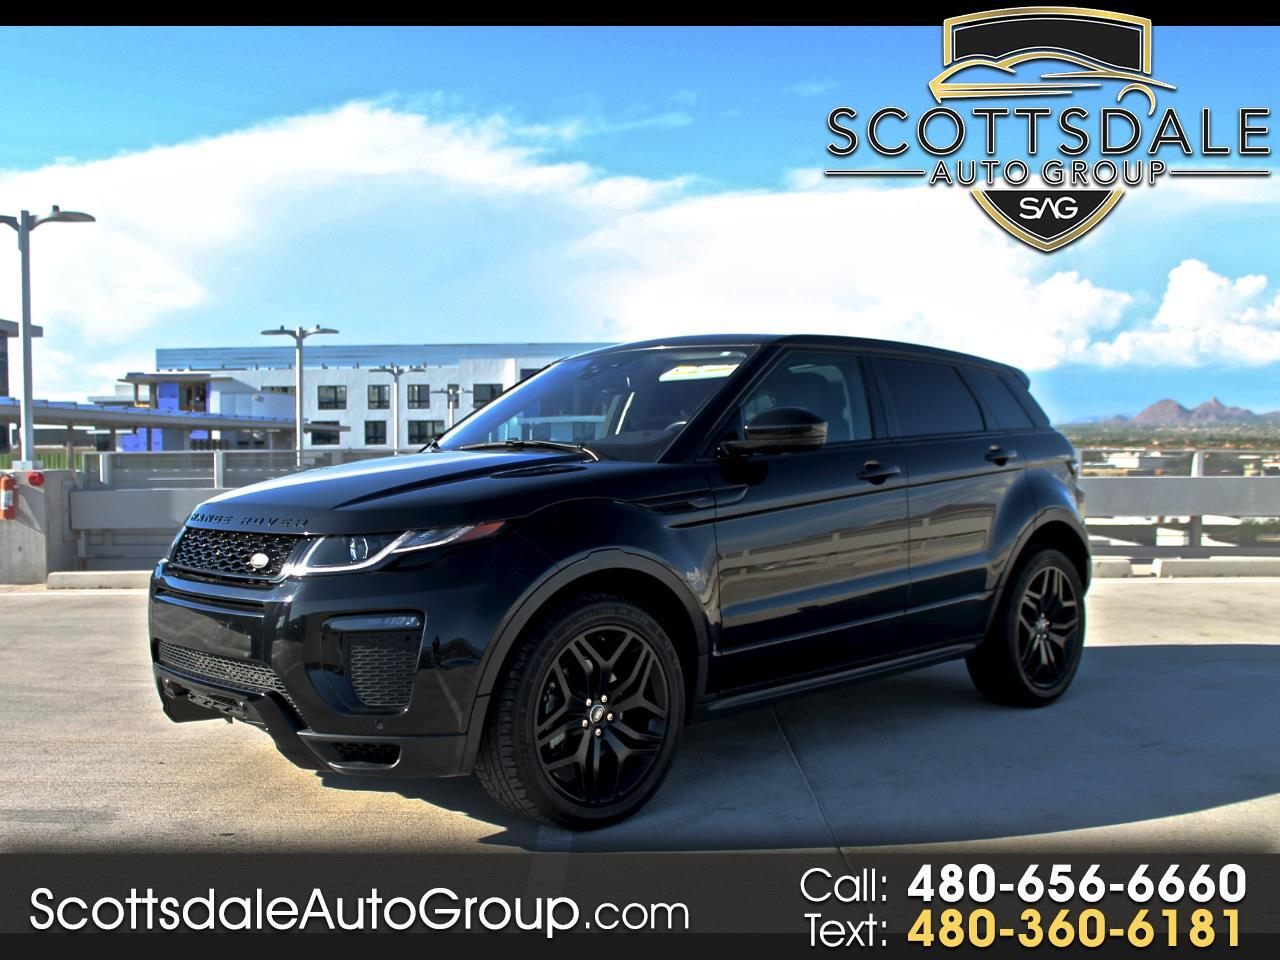 2016 Land Rover Range Rover Evoque 5dr HB HSE Dynamic